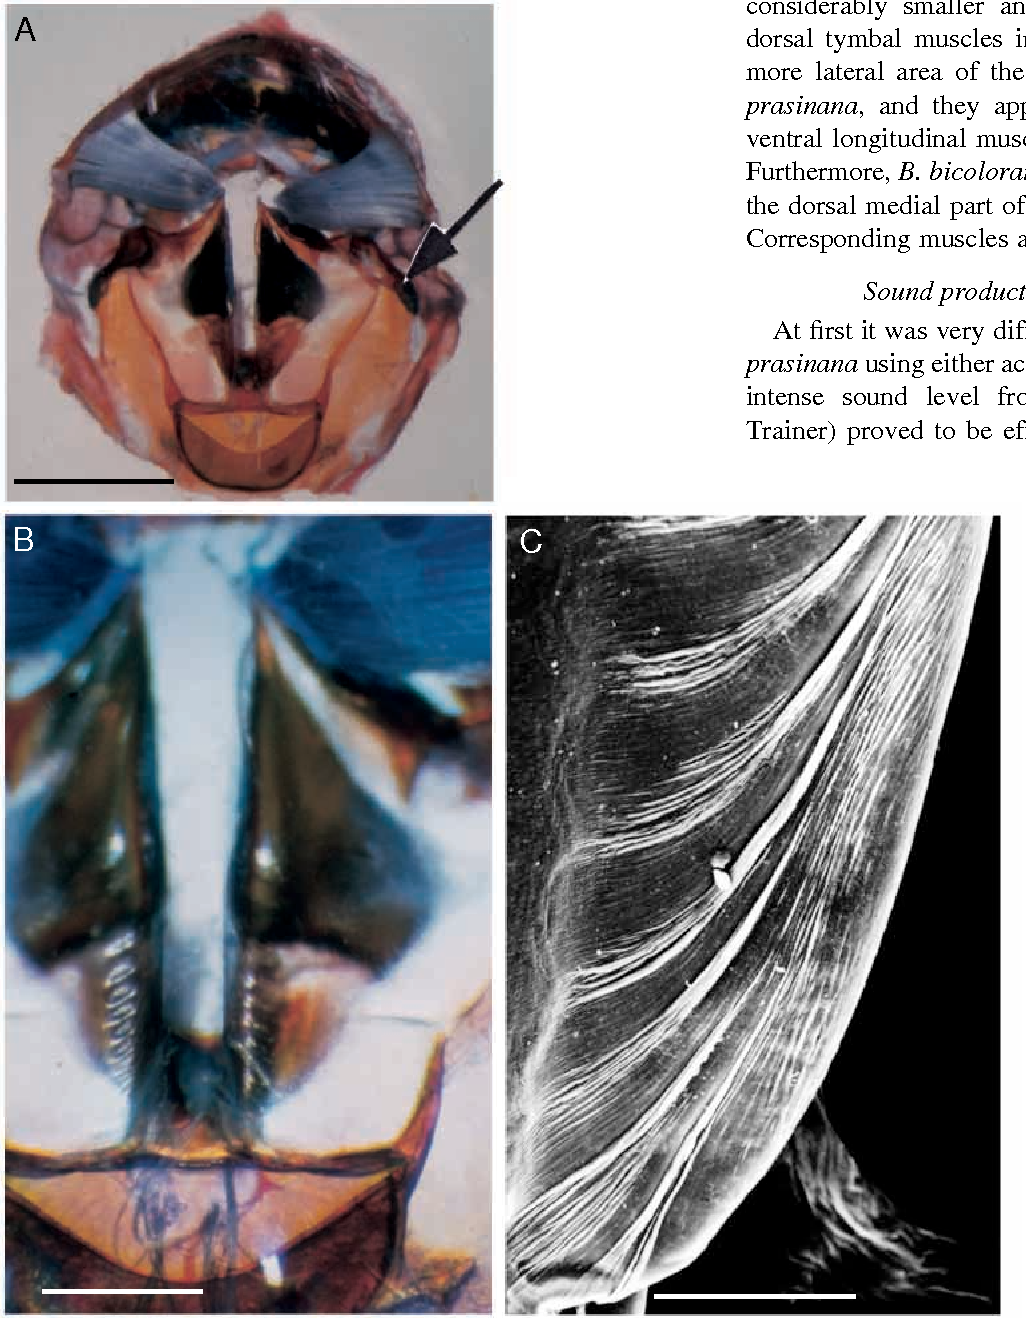 PDF] Sound production by abdominal tymbal organs in two moth